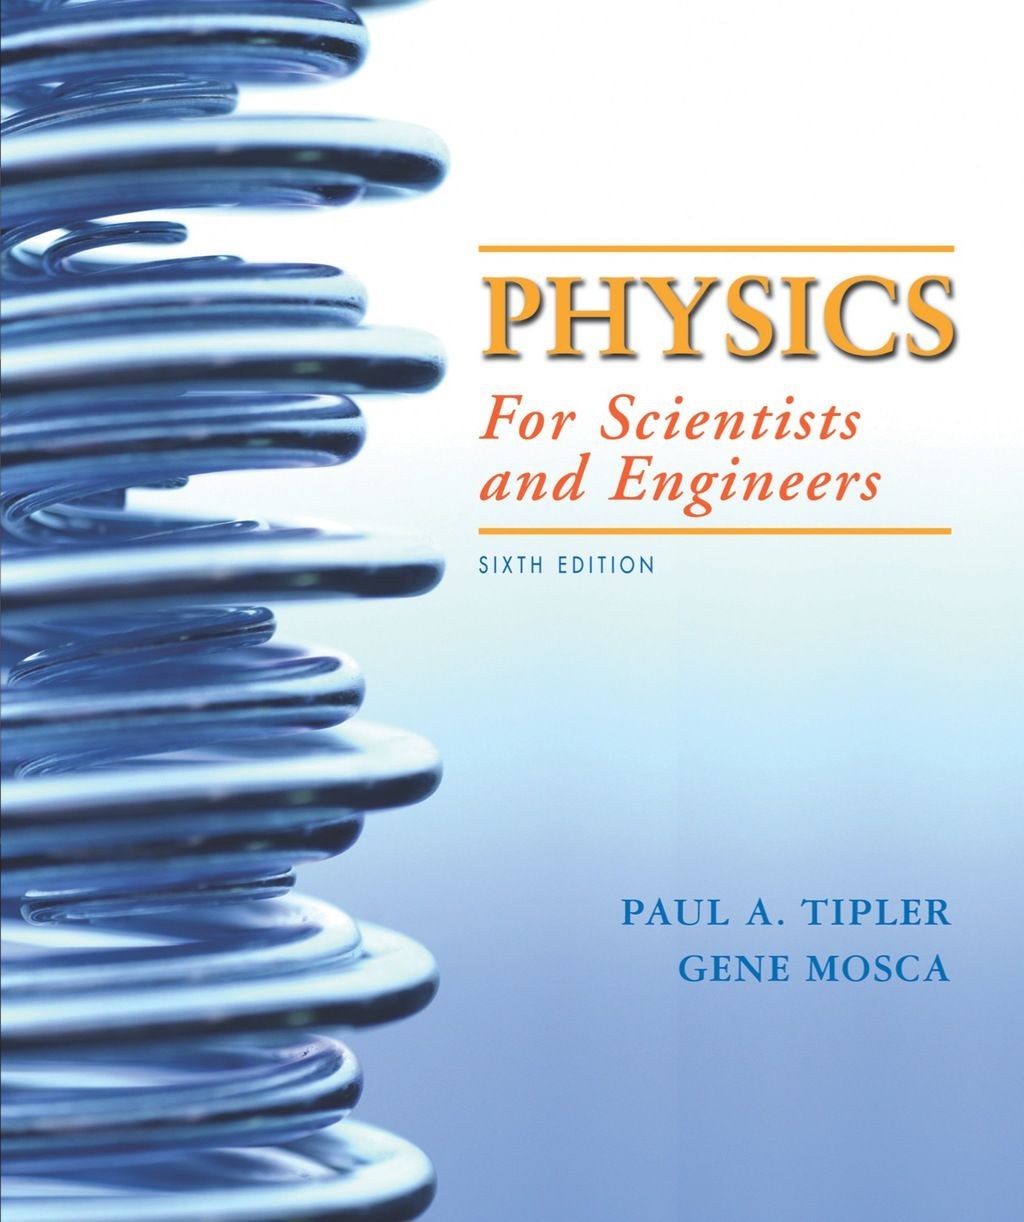 Physics for Scientists and Engineers (eBook Rental